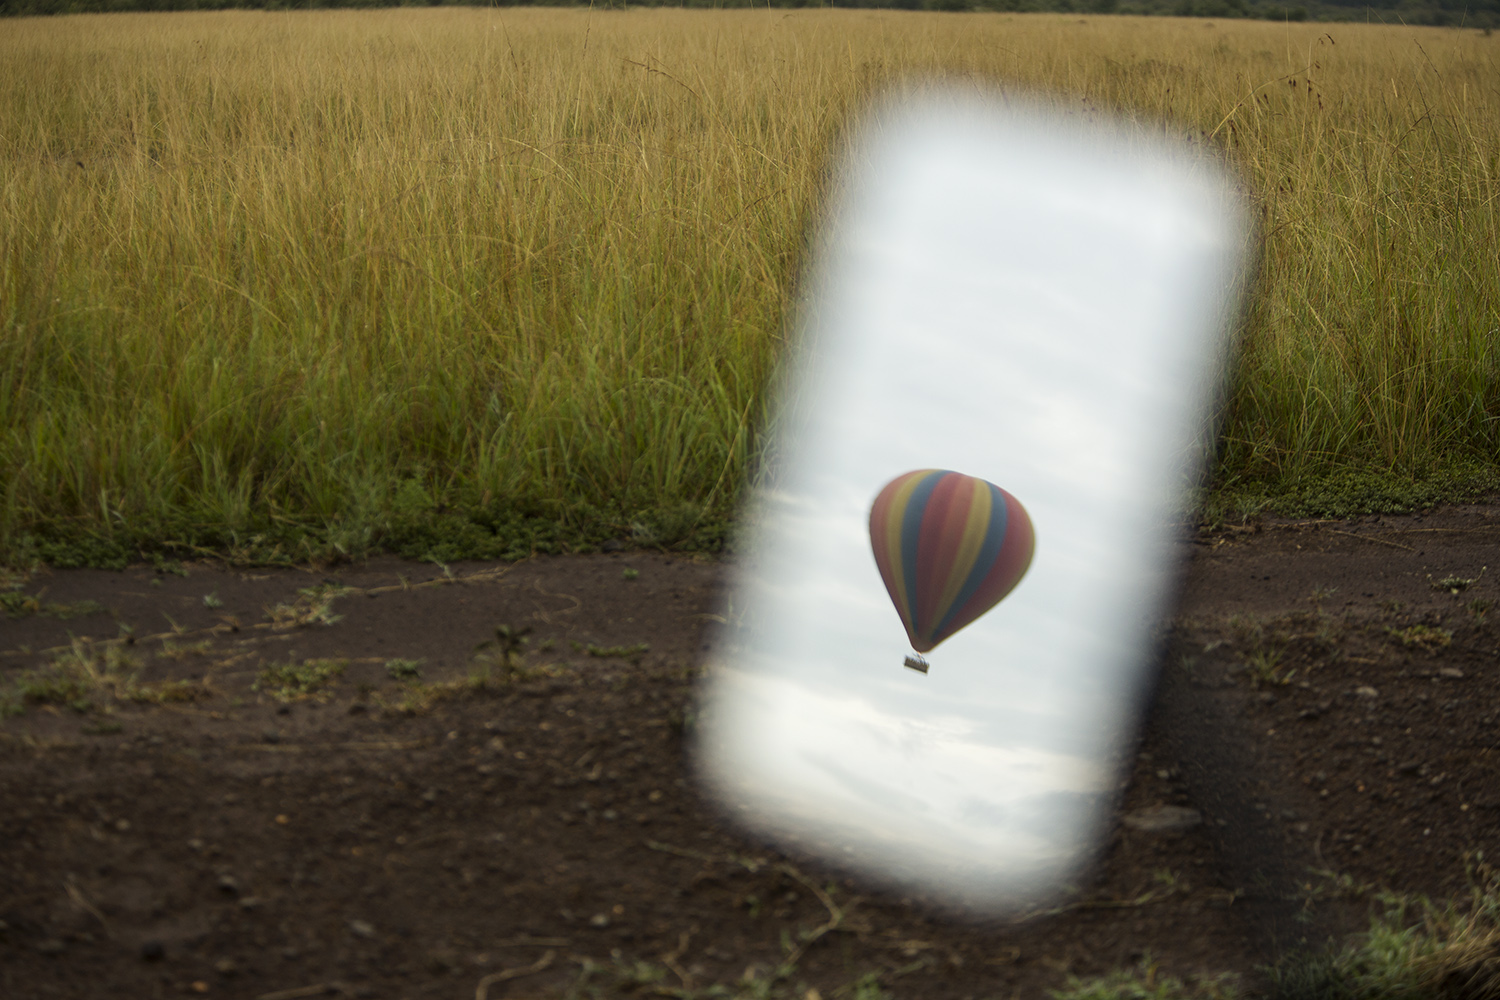 Balloon and rear view mirror